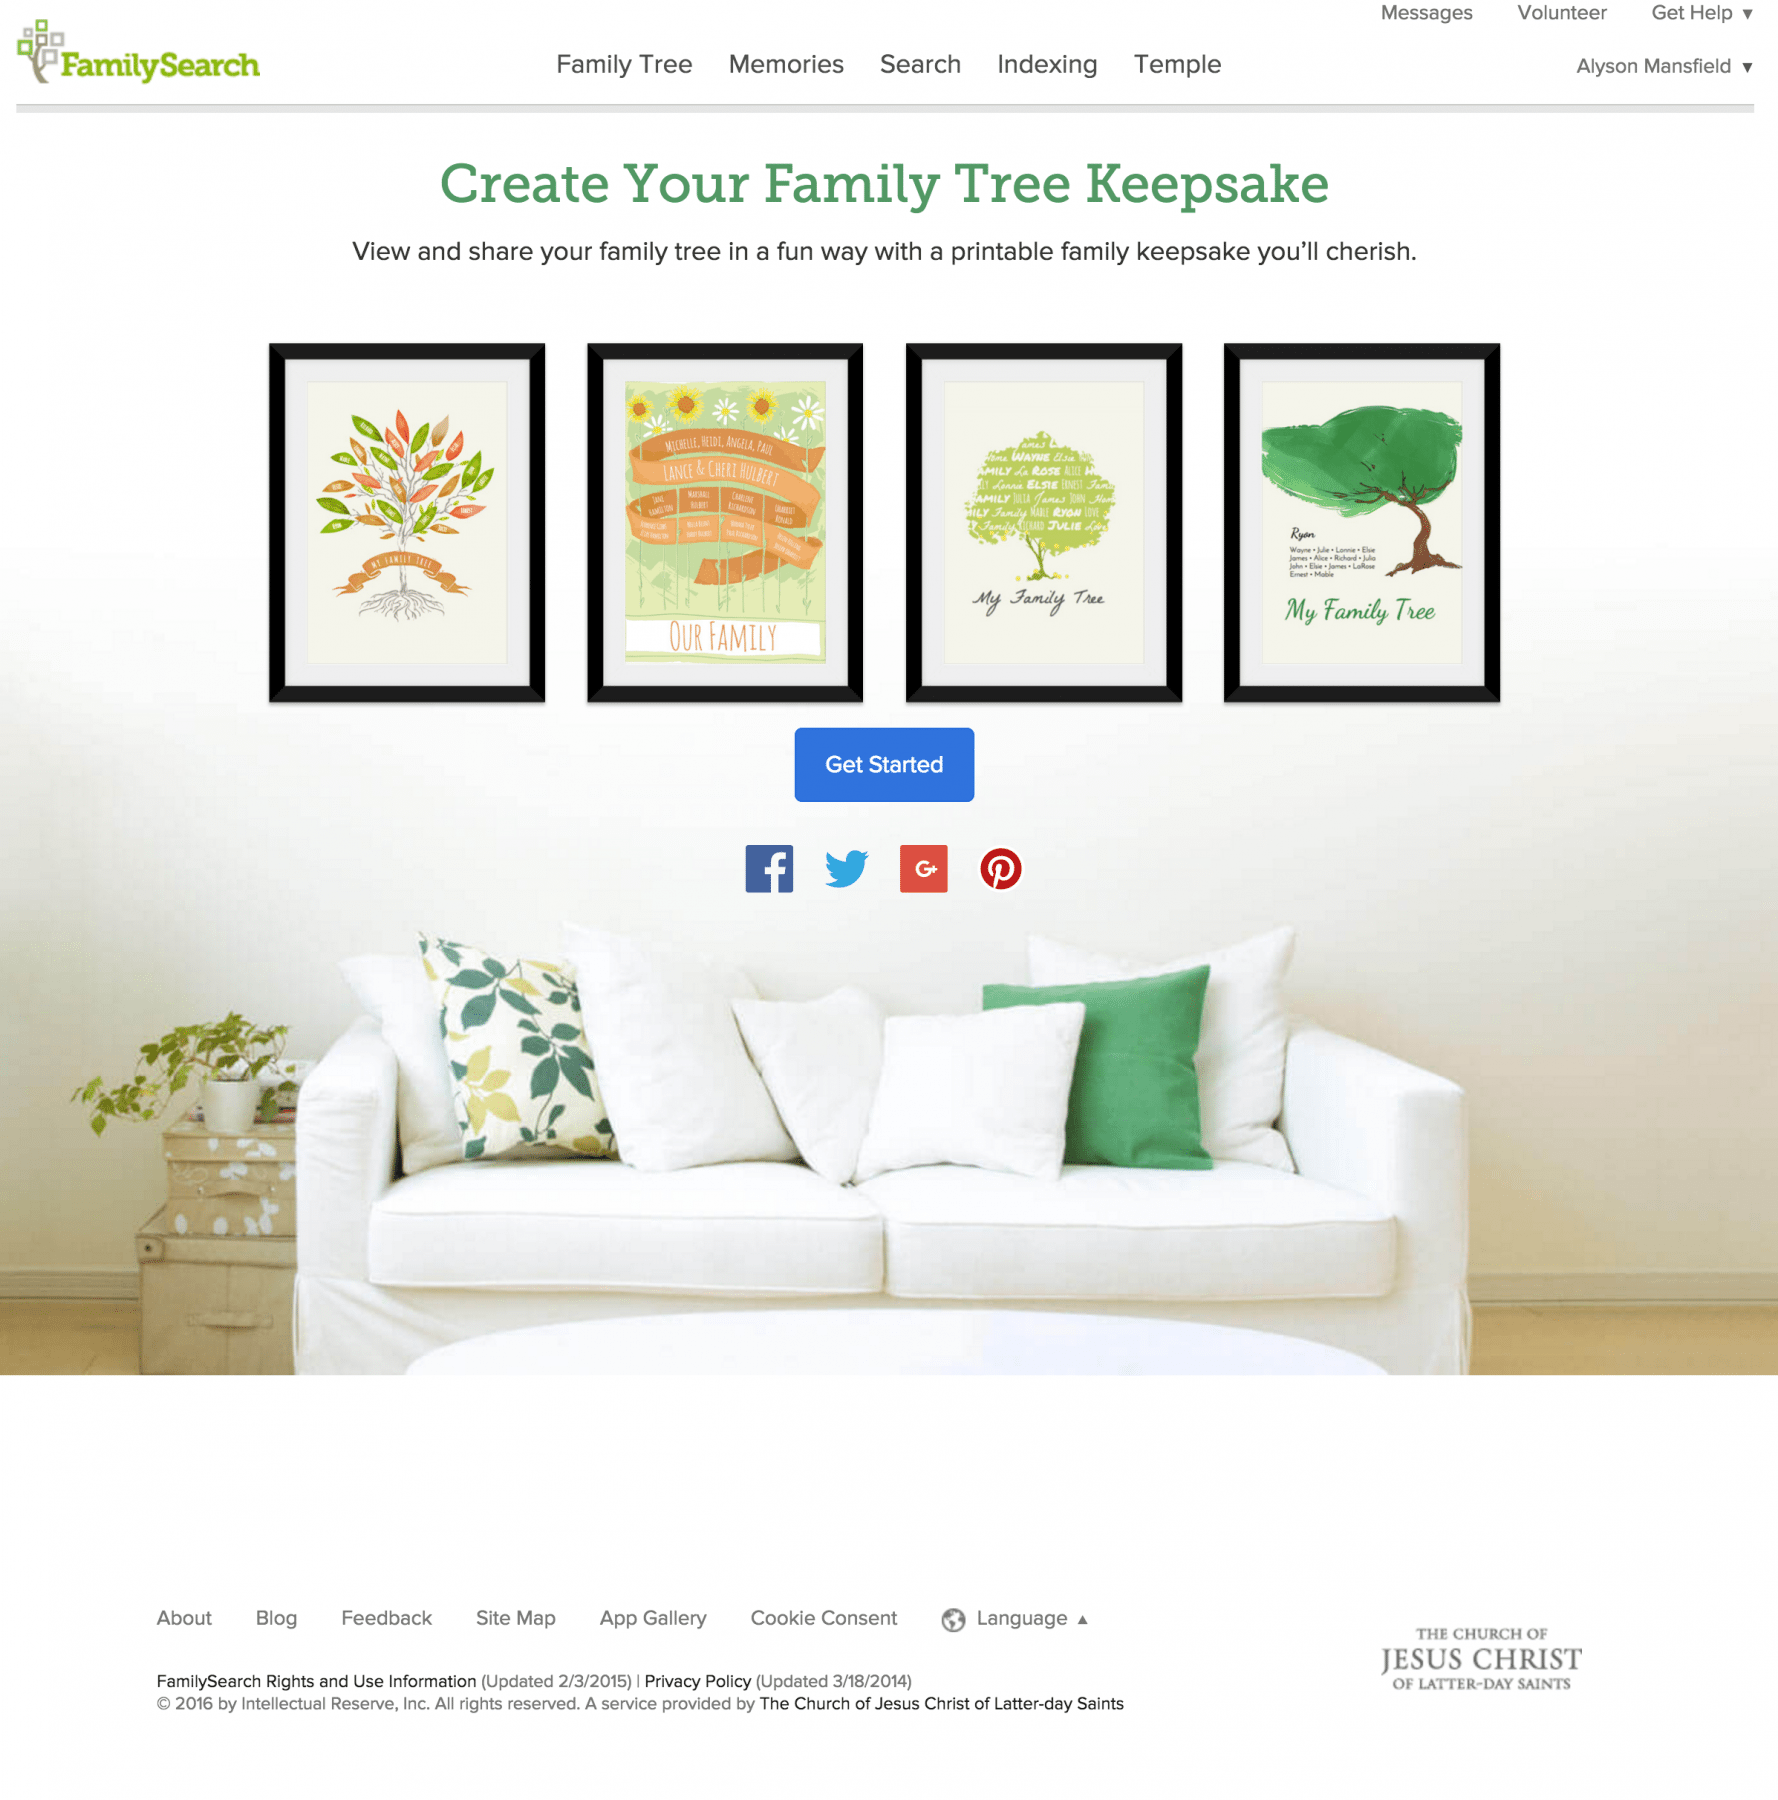 Free family tree art at FamilySearch.org